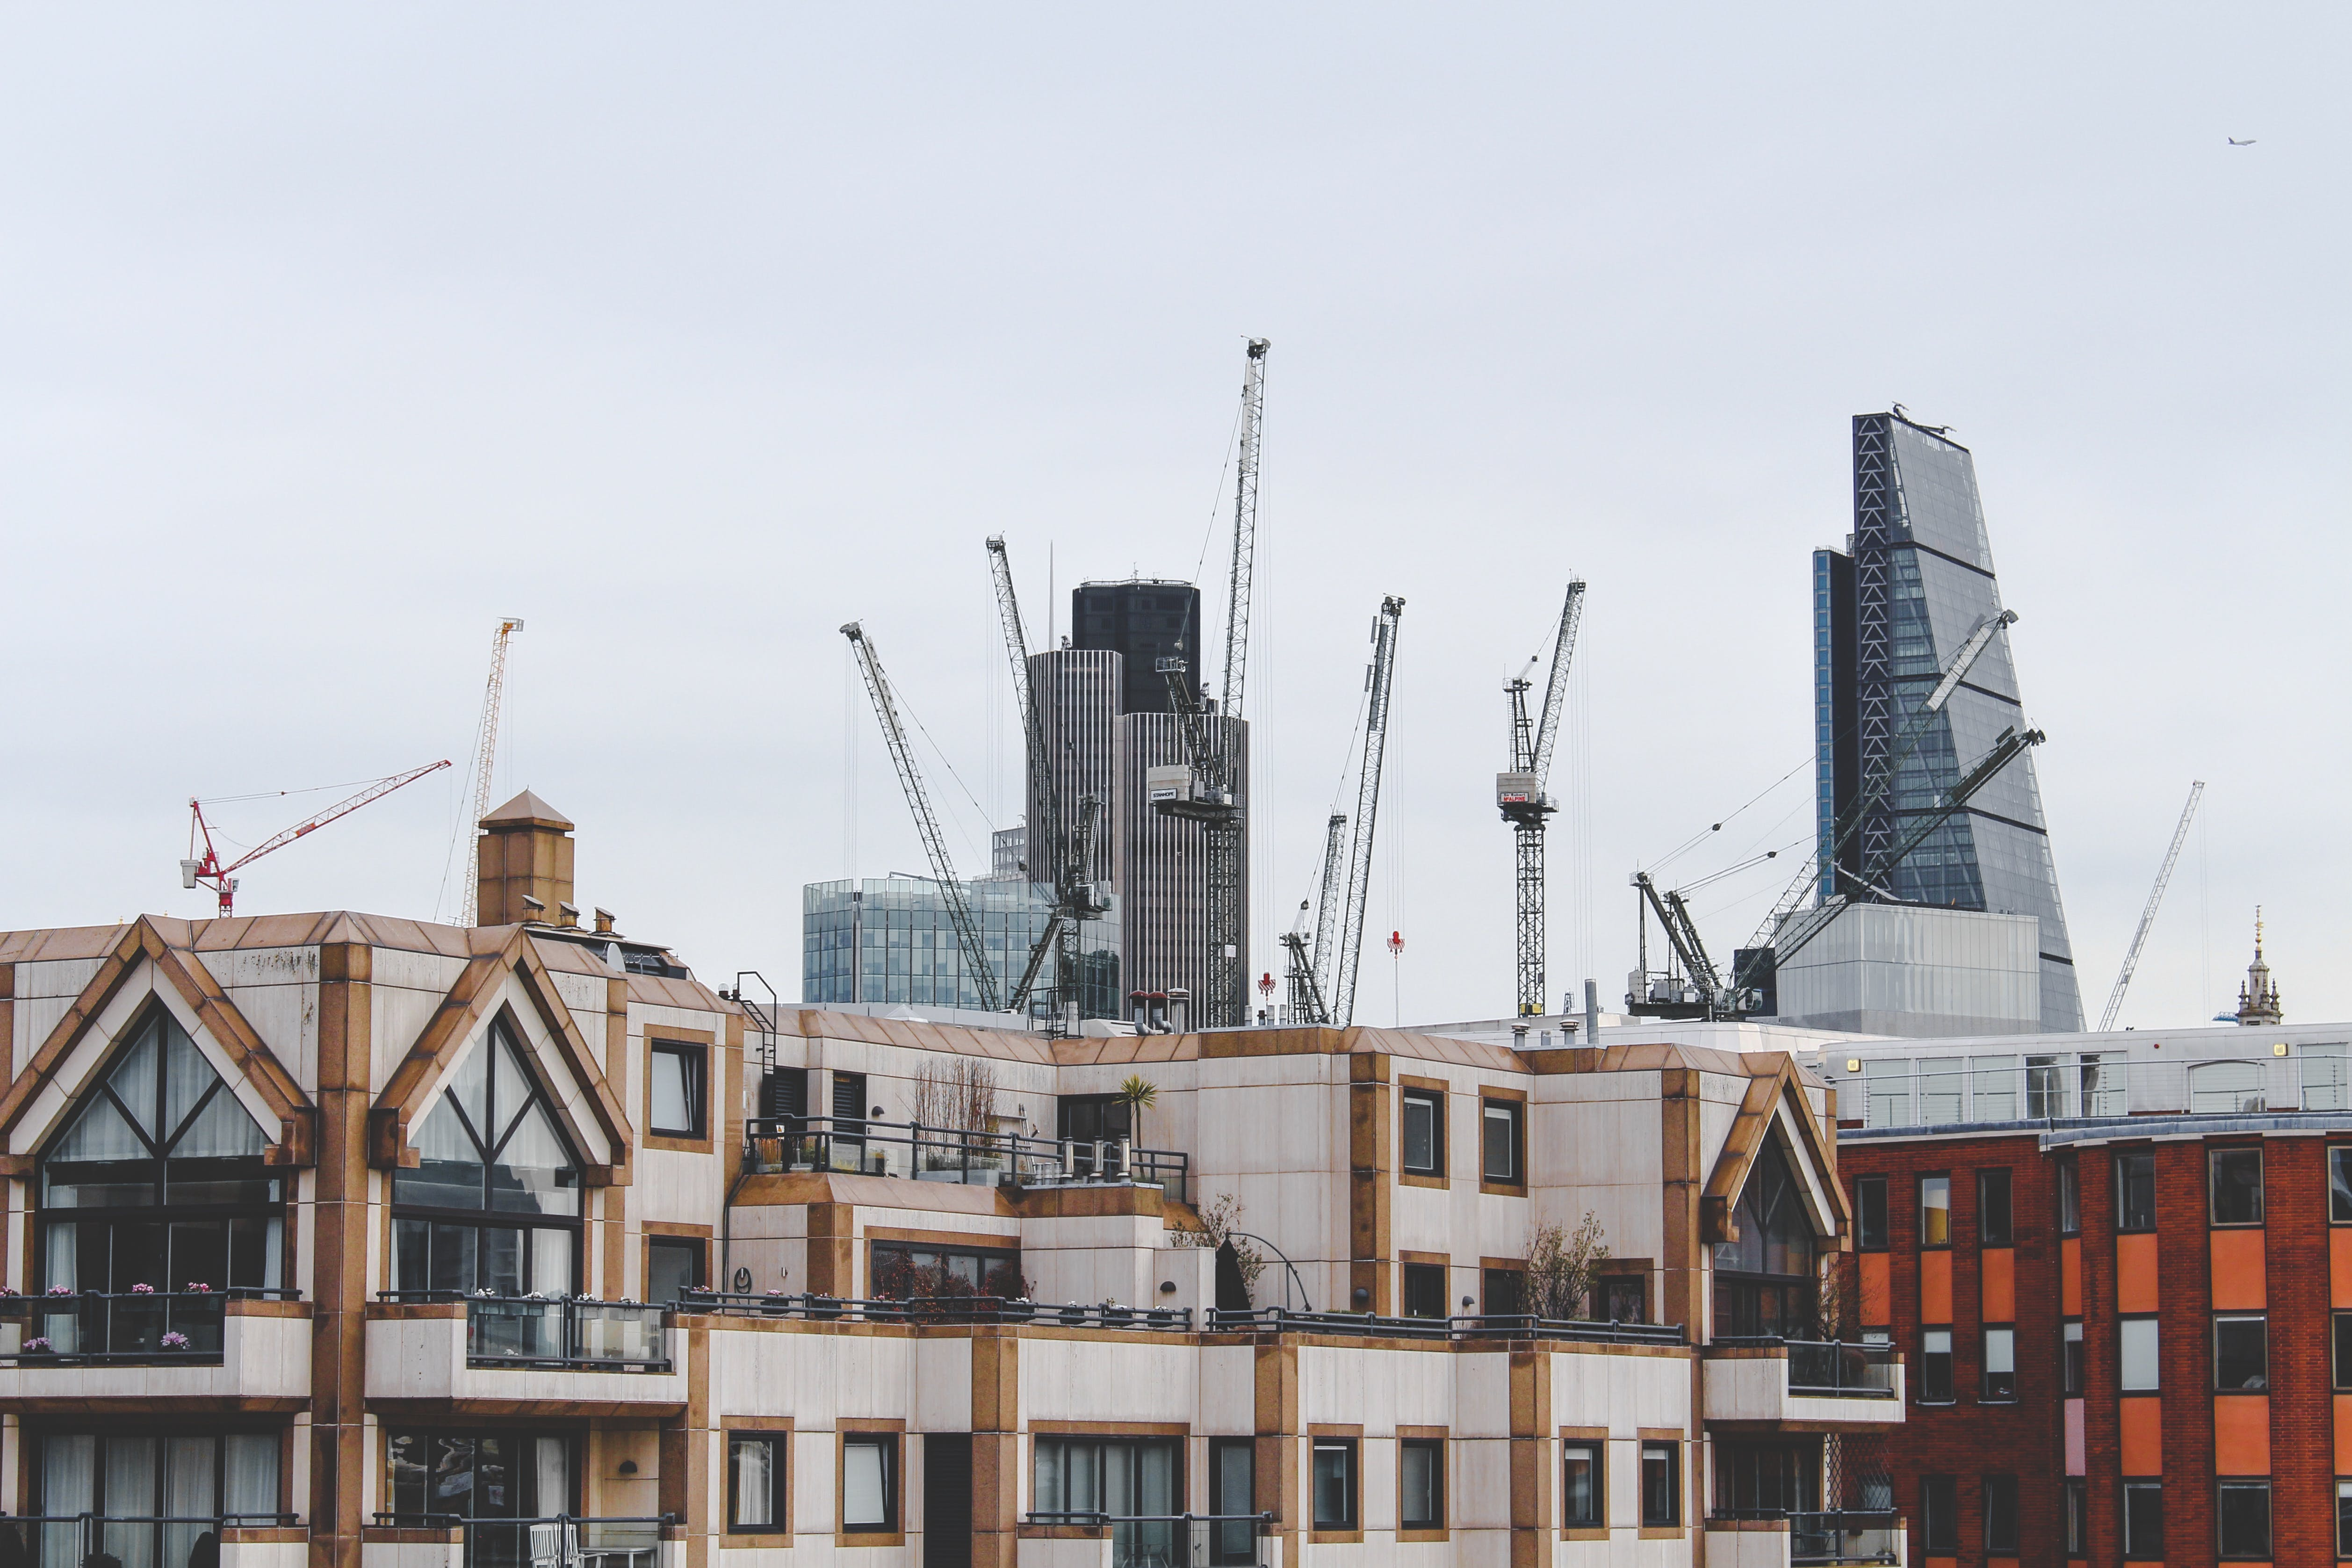 Free stock photo of architecture, buildings, constructing, crane